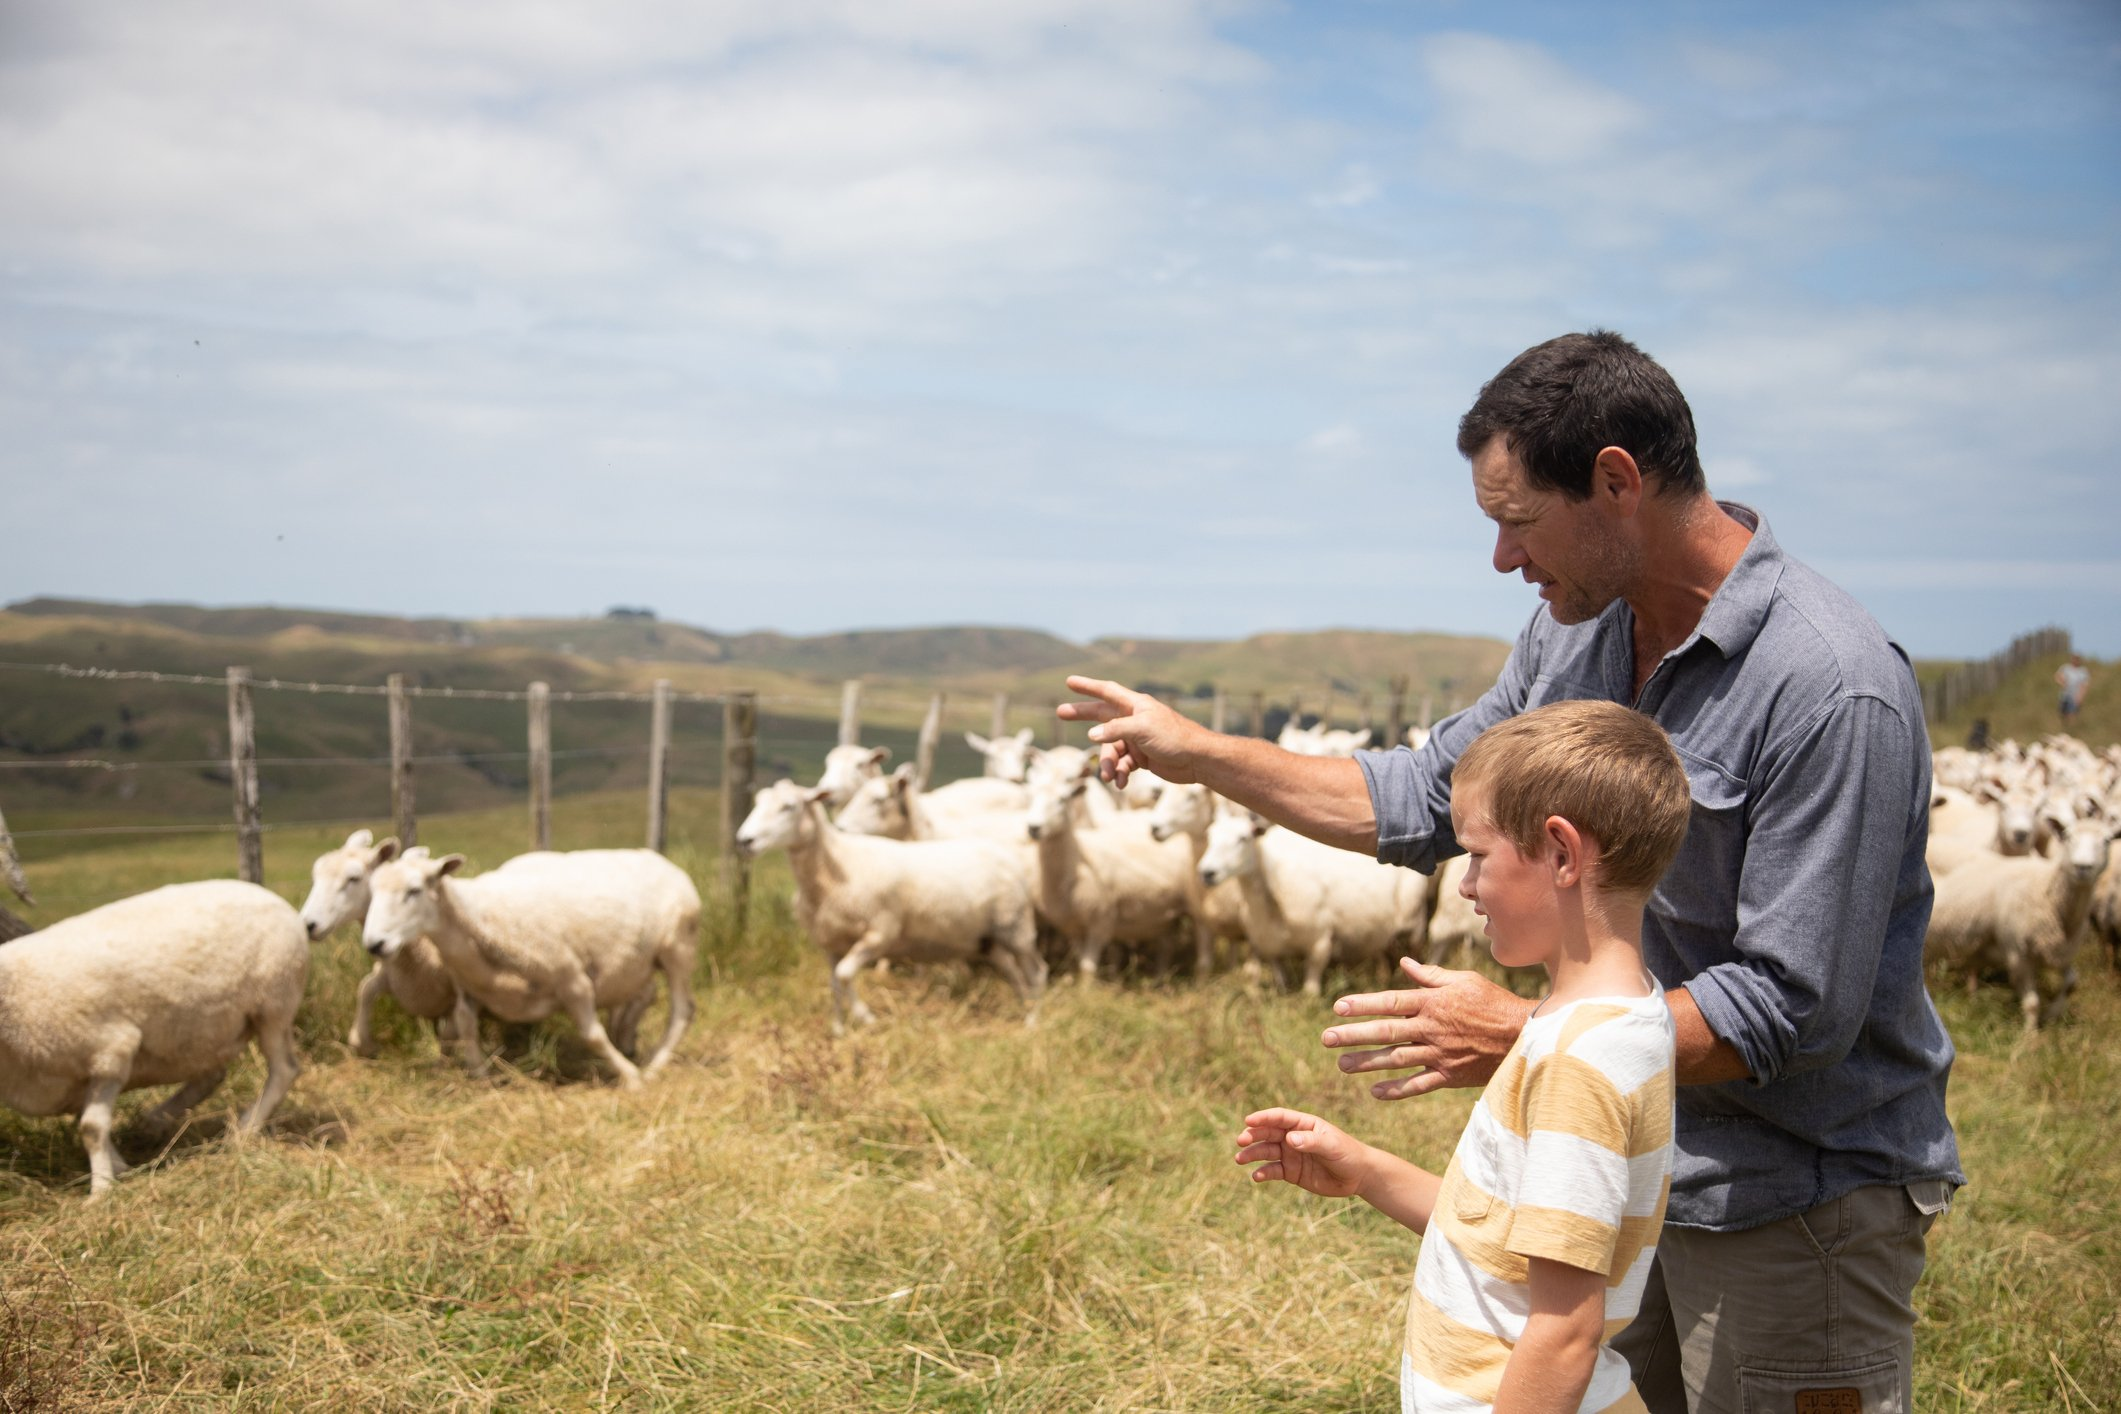 Leo explaining the intricacies of farming to his son Michael. | Photo: Getty Images